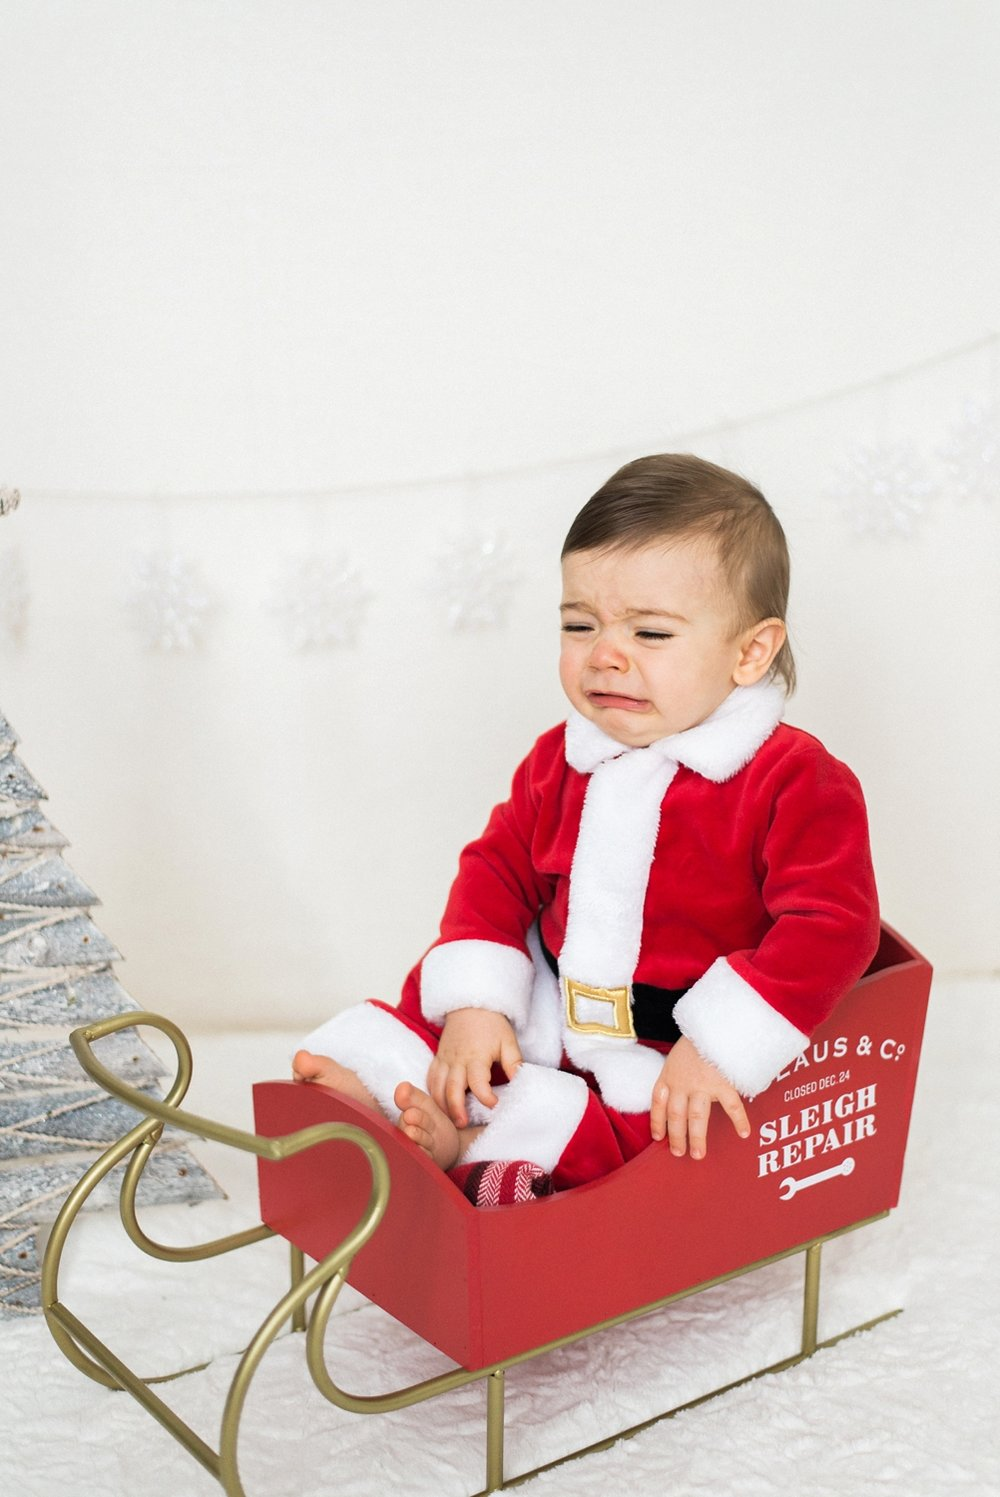 portland-newborn-christmas-santa-holiday-photos-1-year-baby-portrait-session-033_cr.jpg